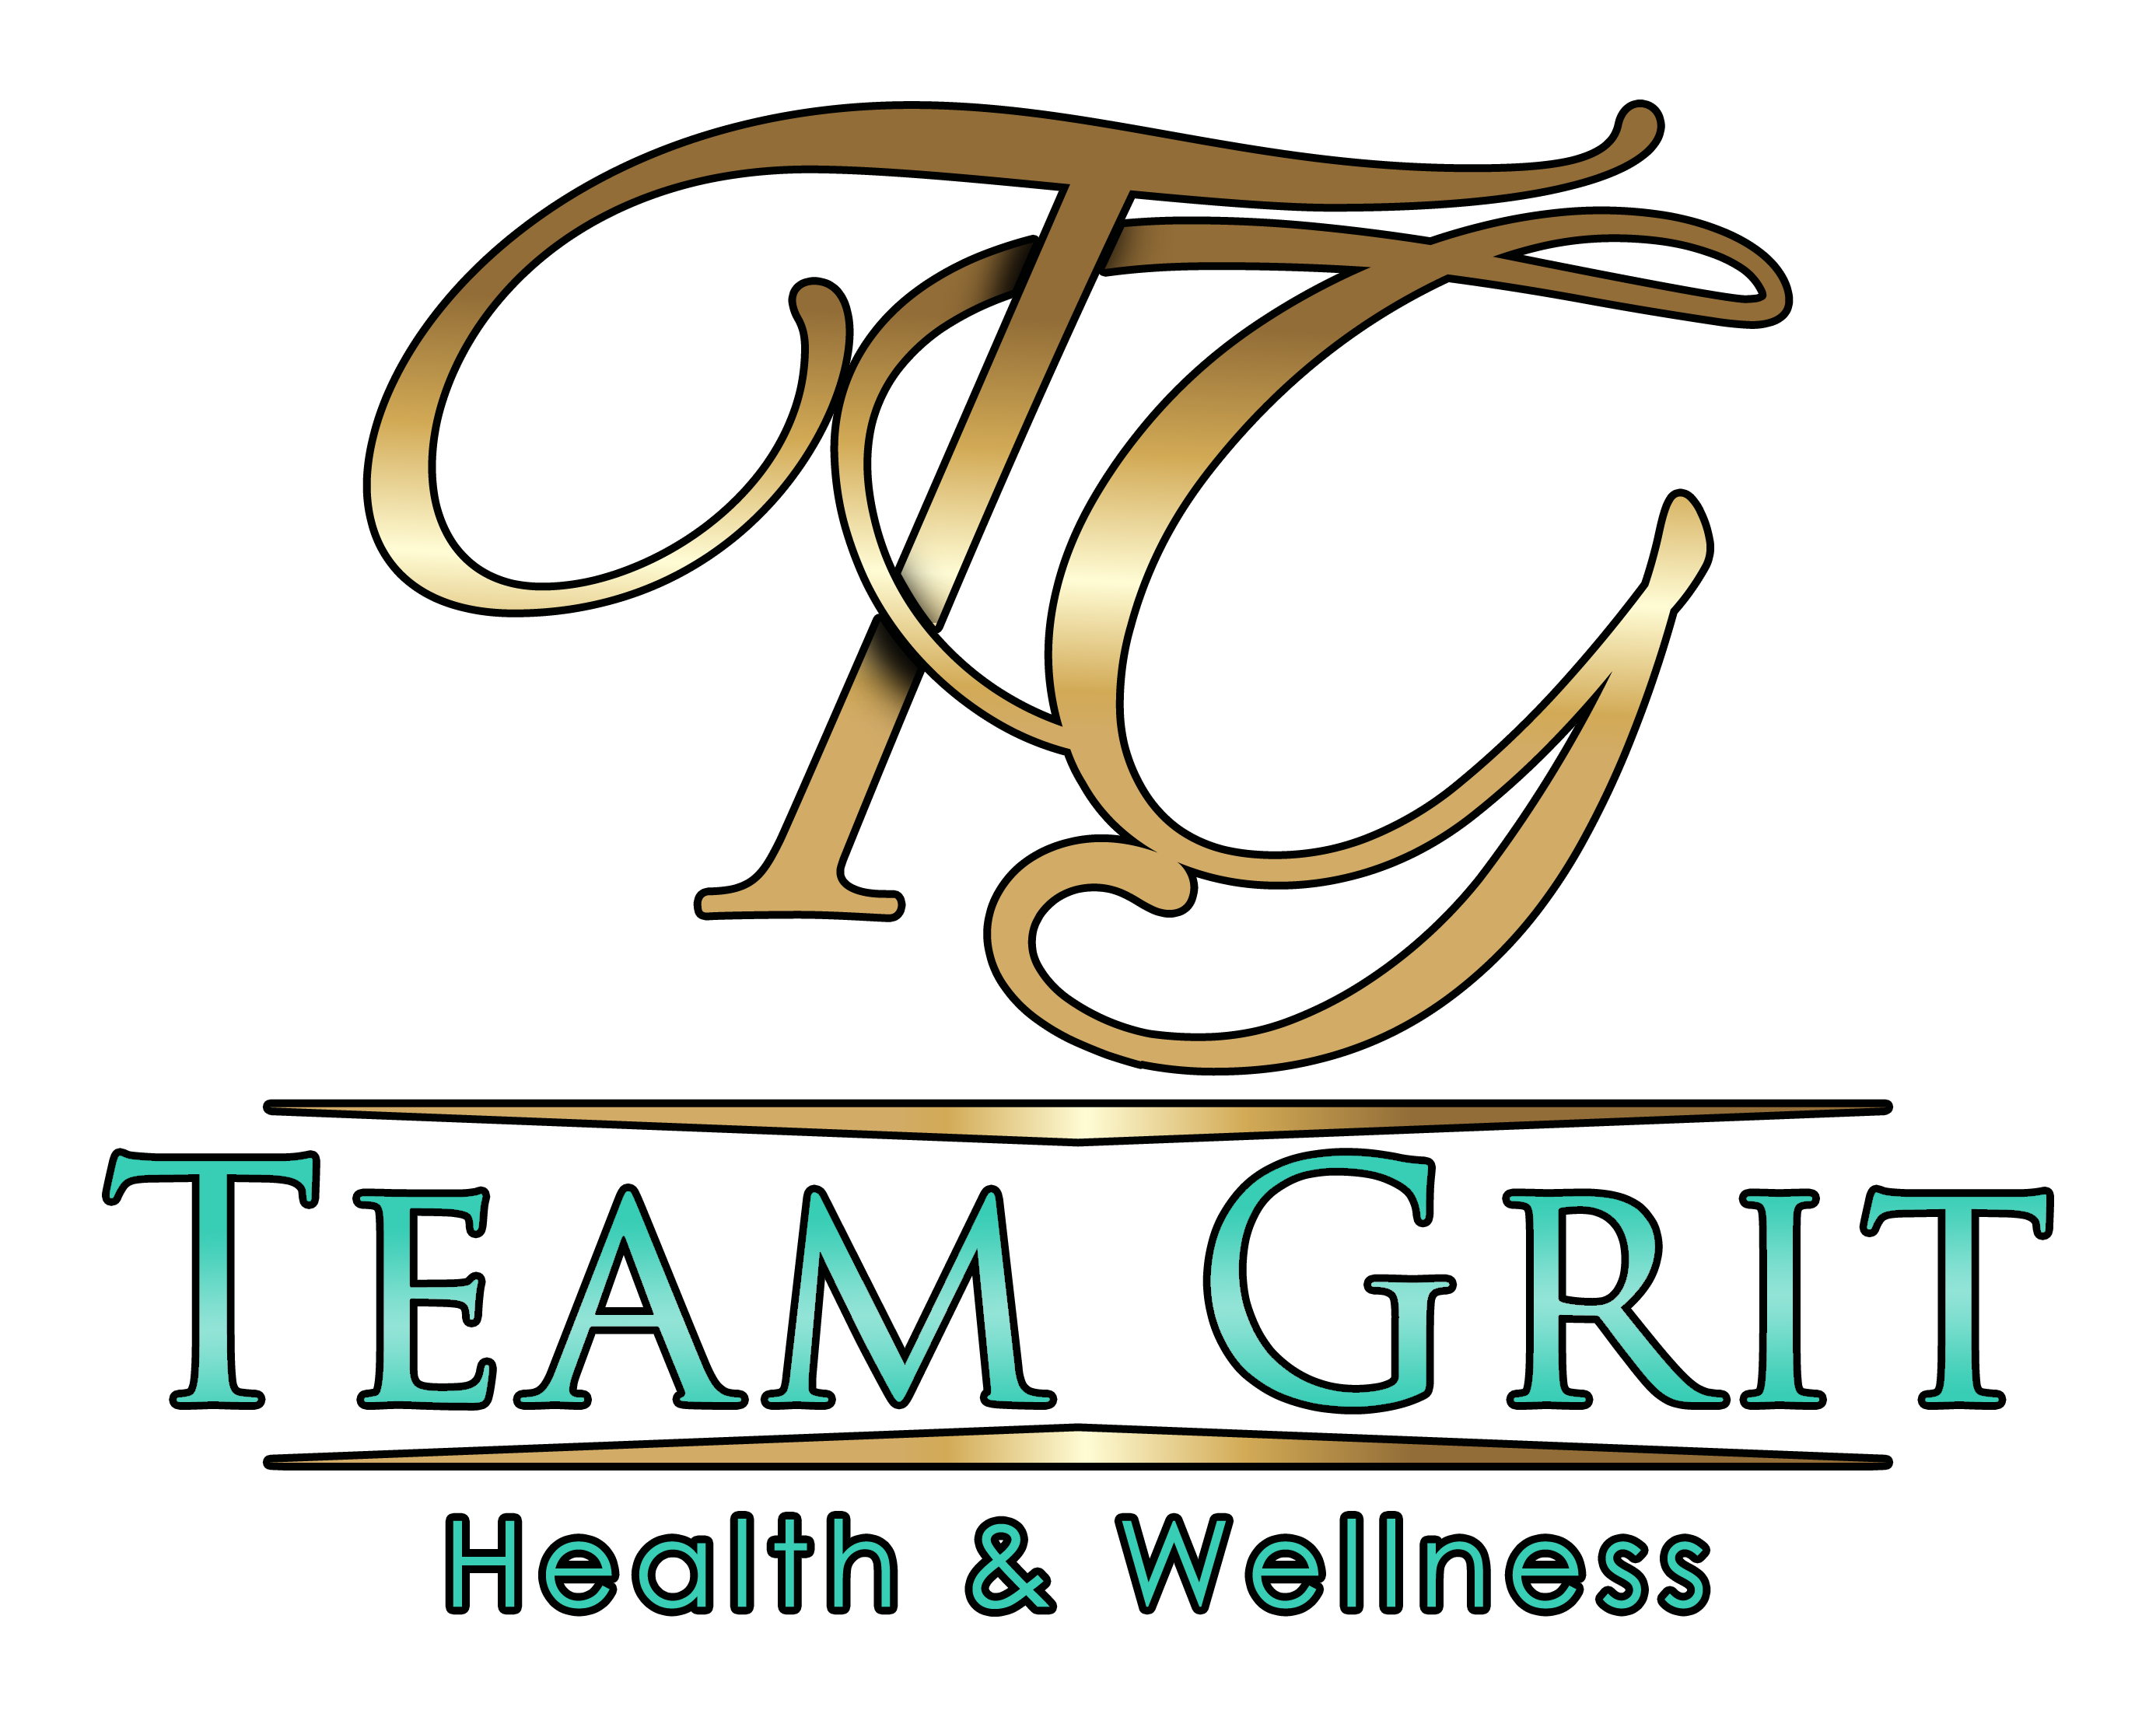 Team Grit Health & Wellness